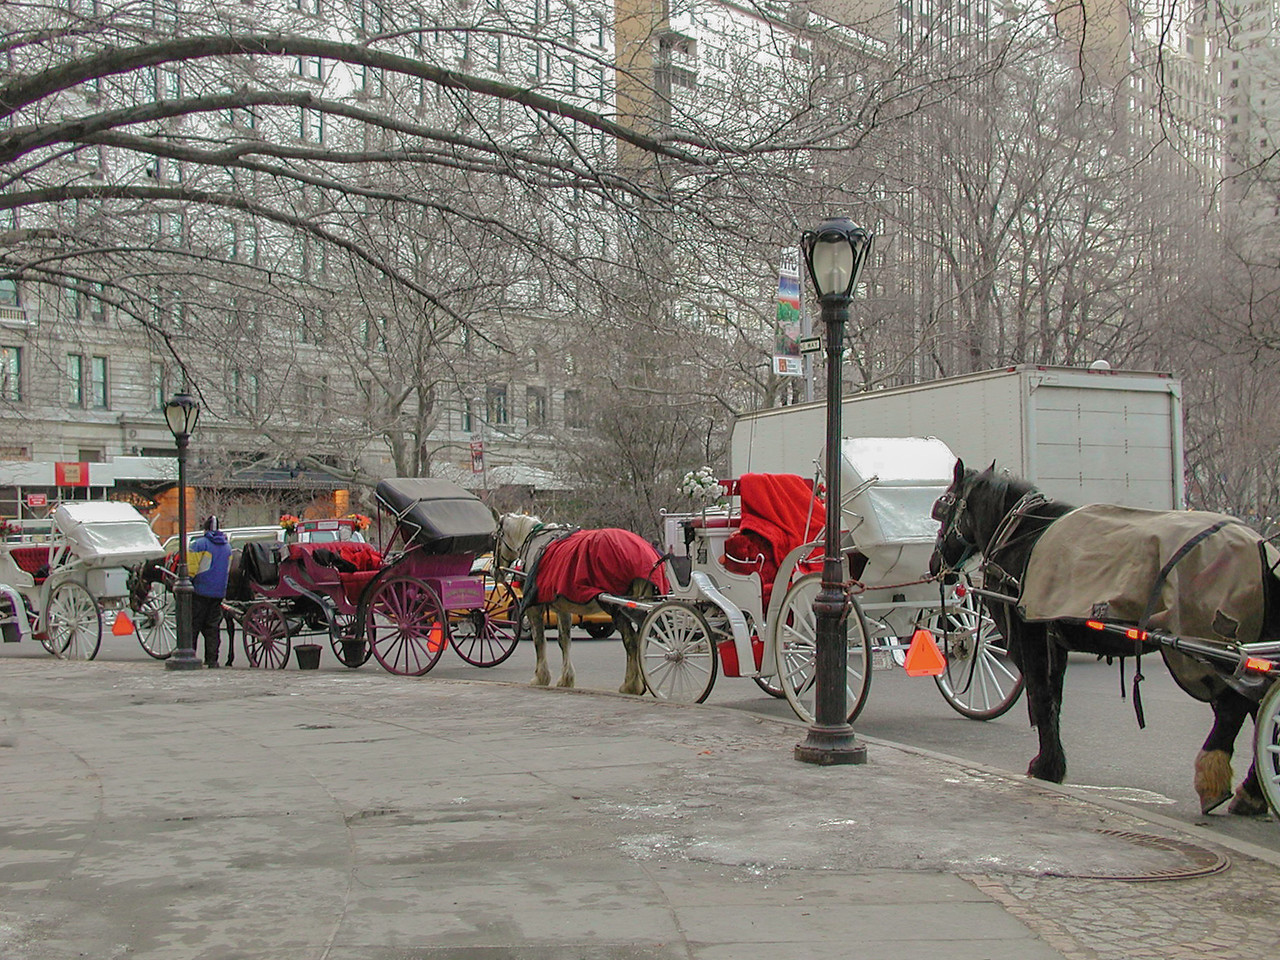 Queue for horse drawn buggy